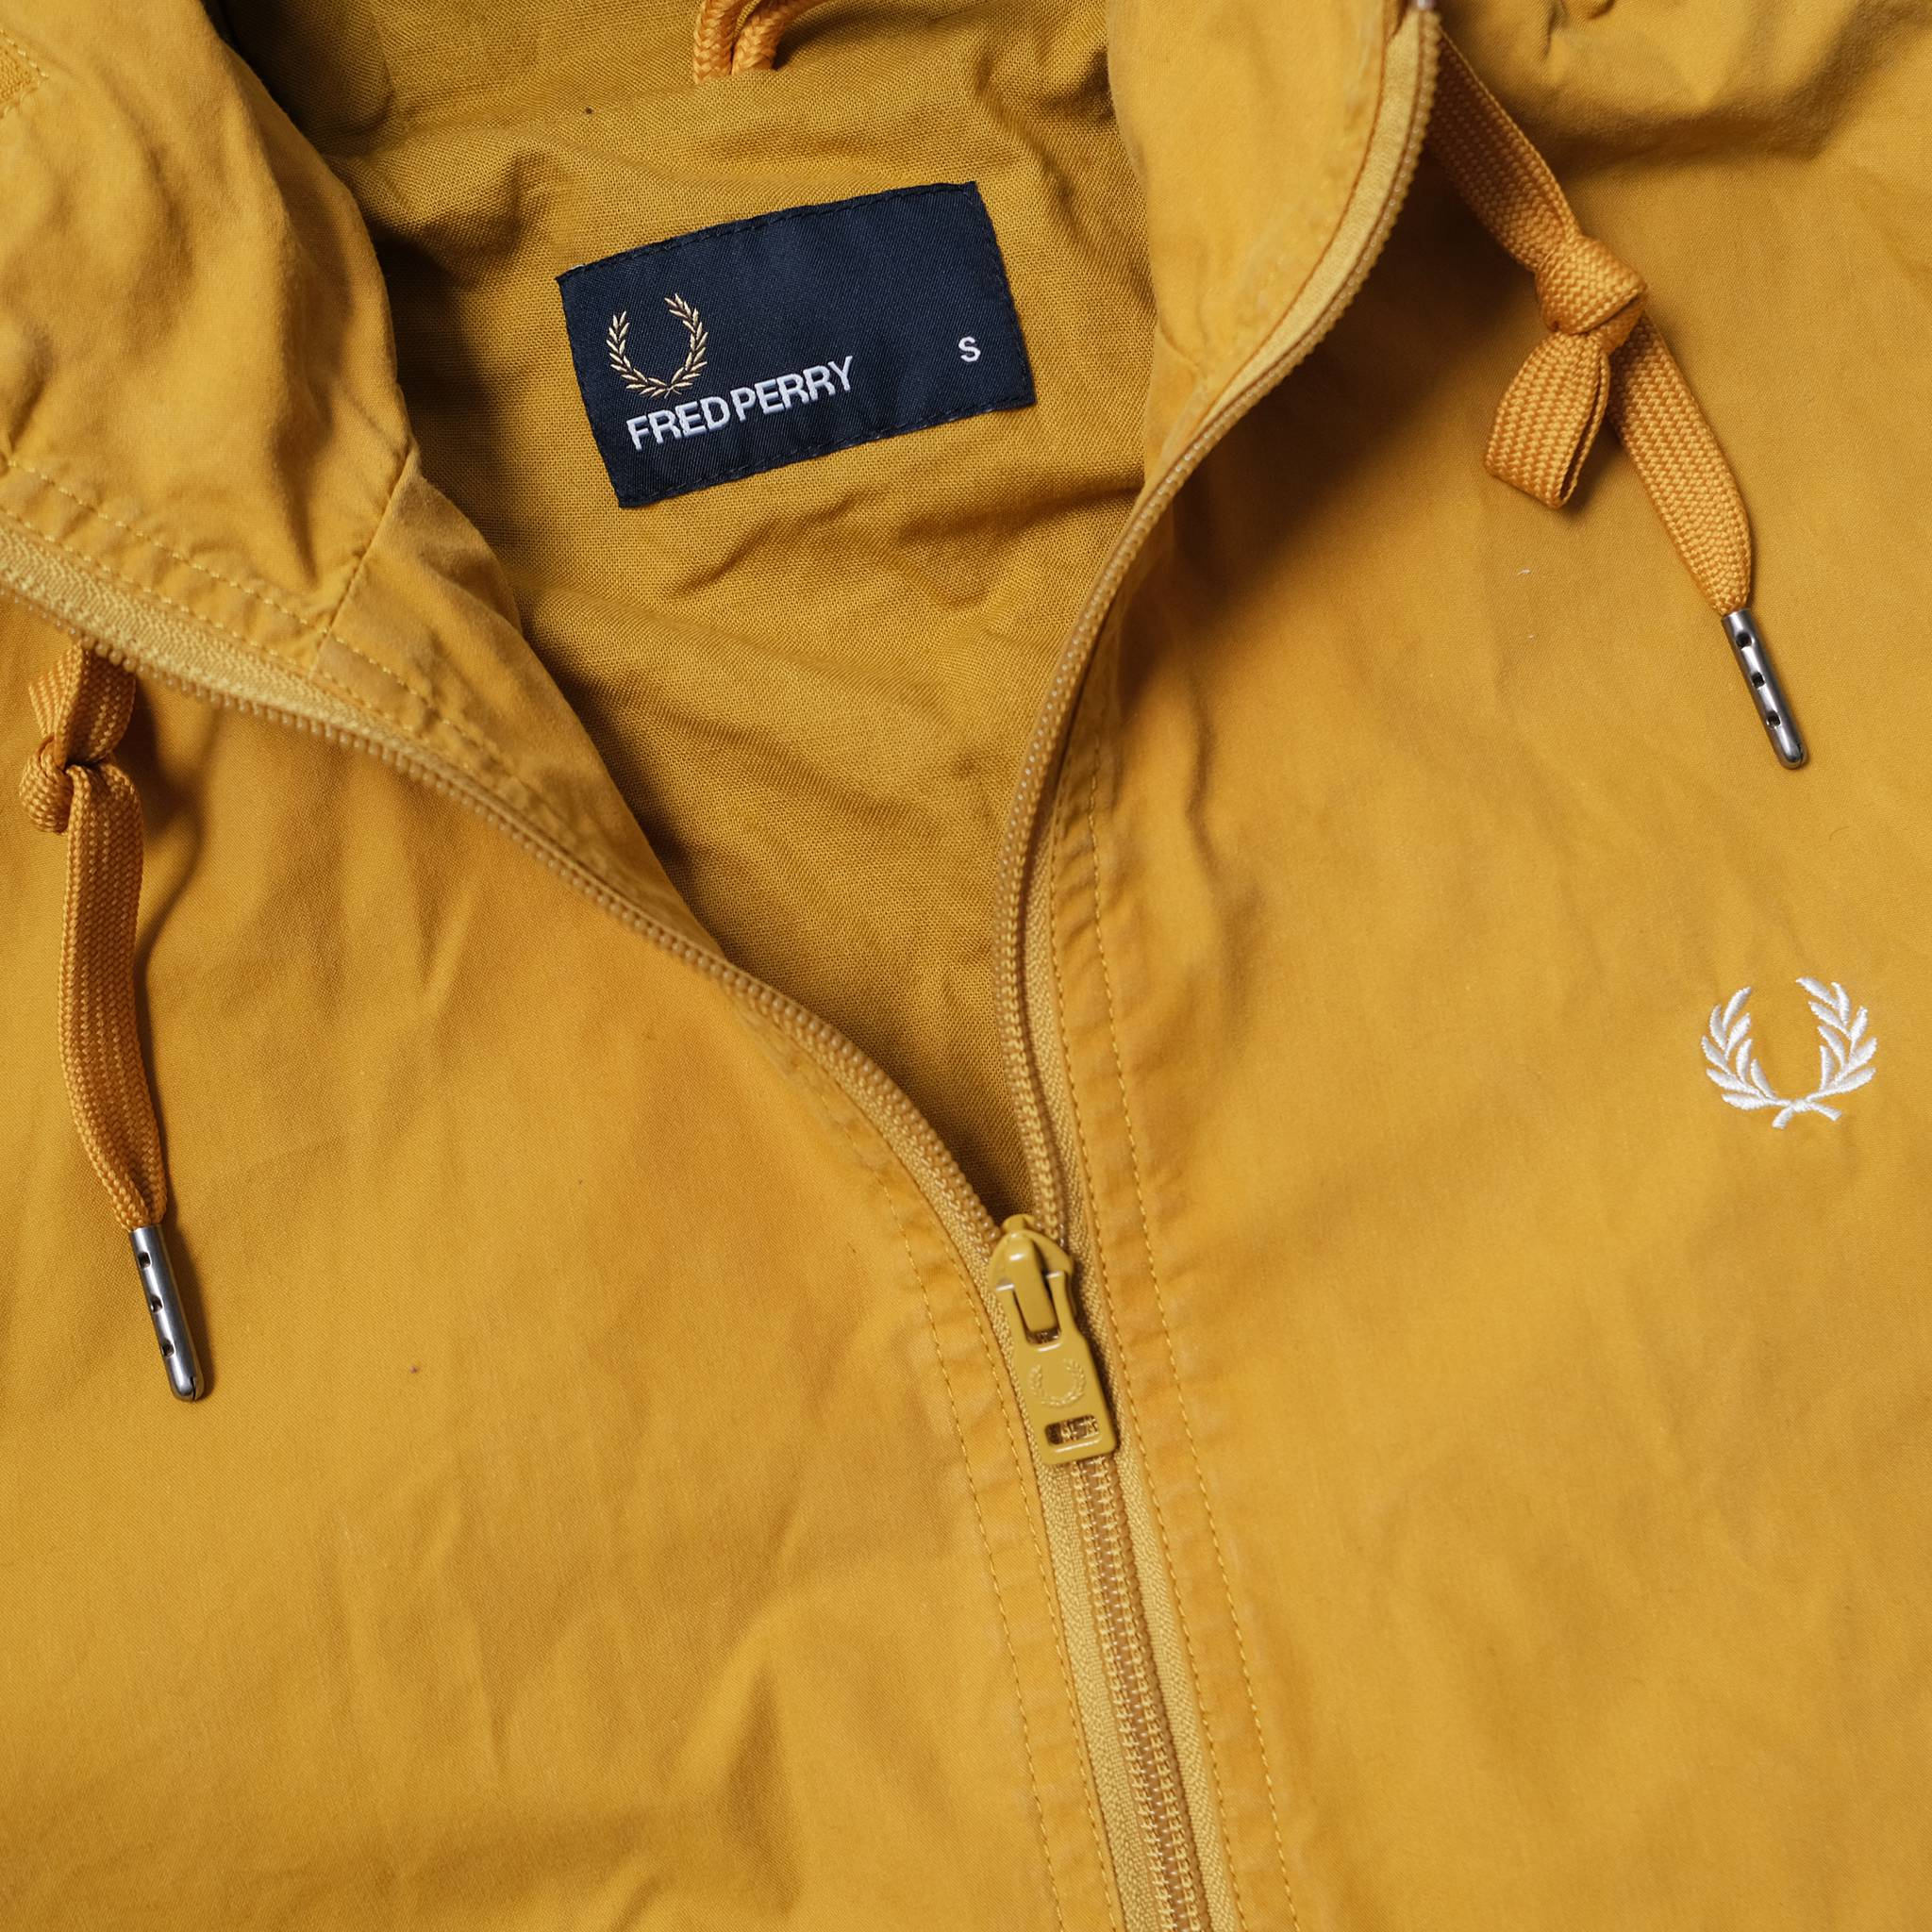 Vintage Fred Perry Light Jacket Small